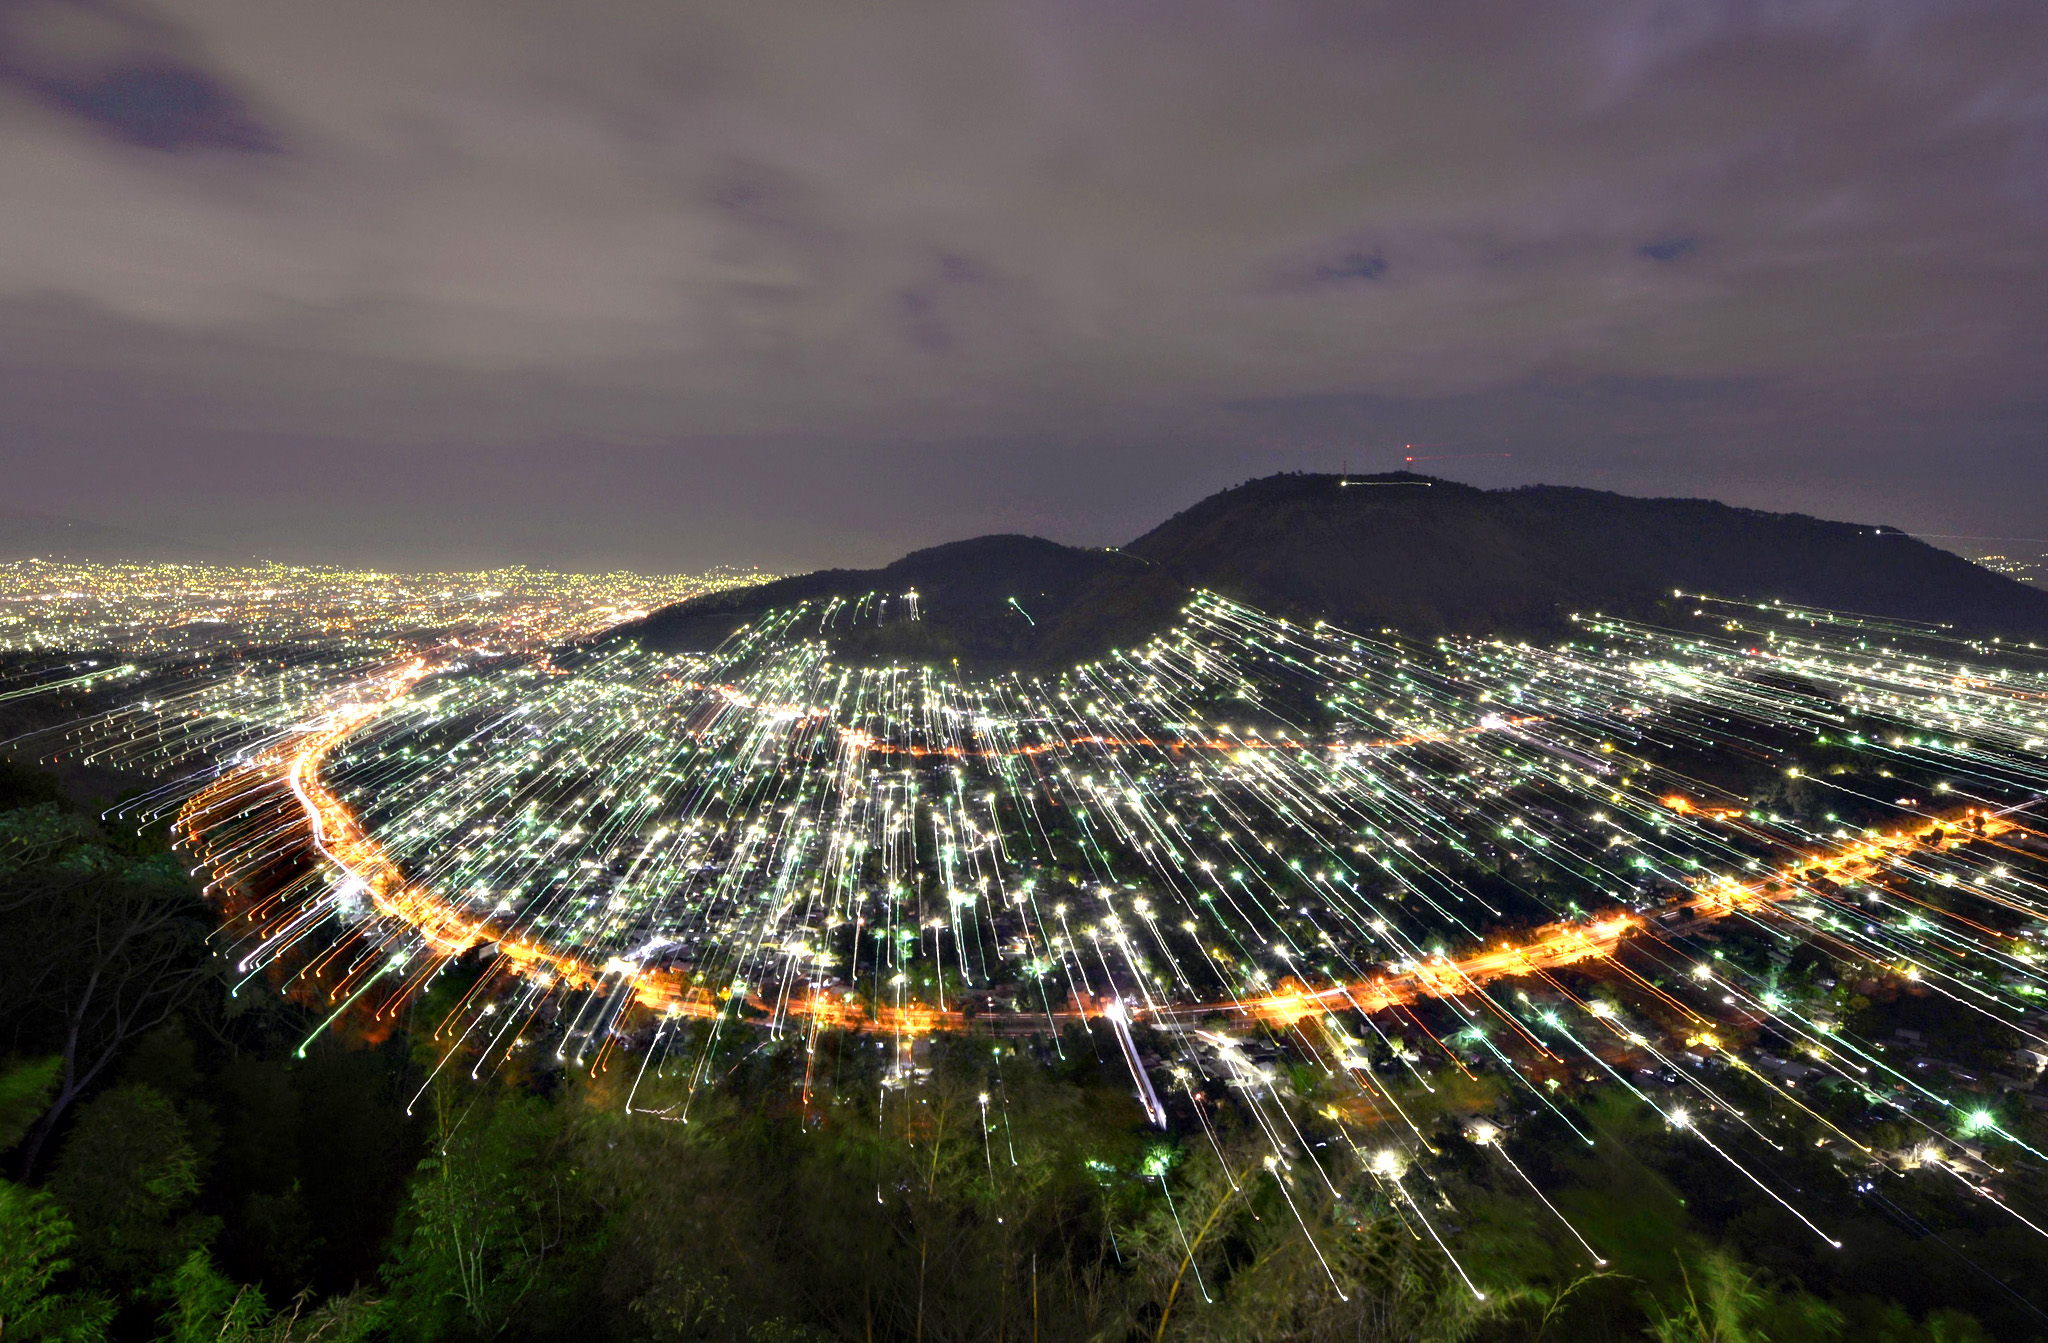 Night view of San Salvador, El Salvador, using camera zoom effect